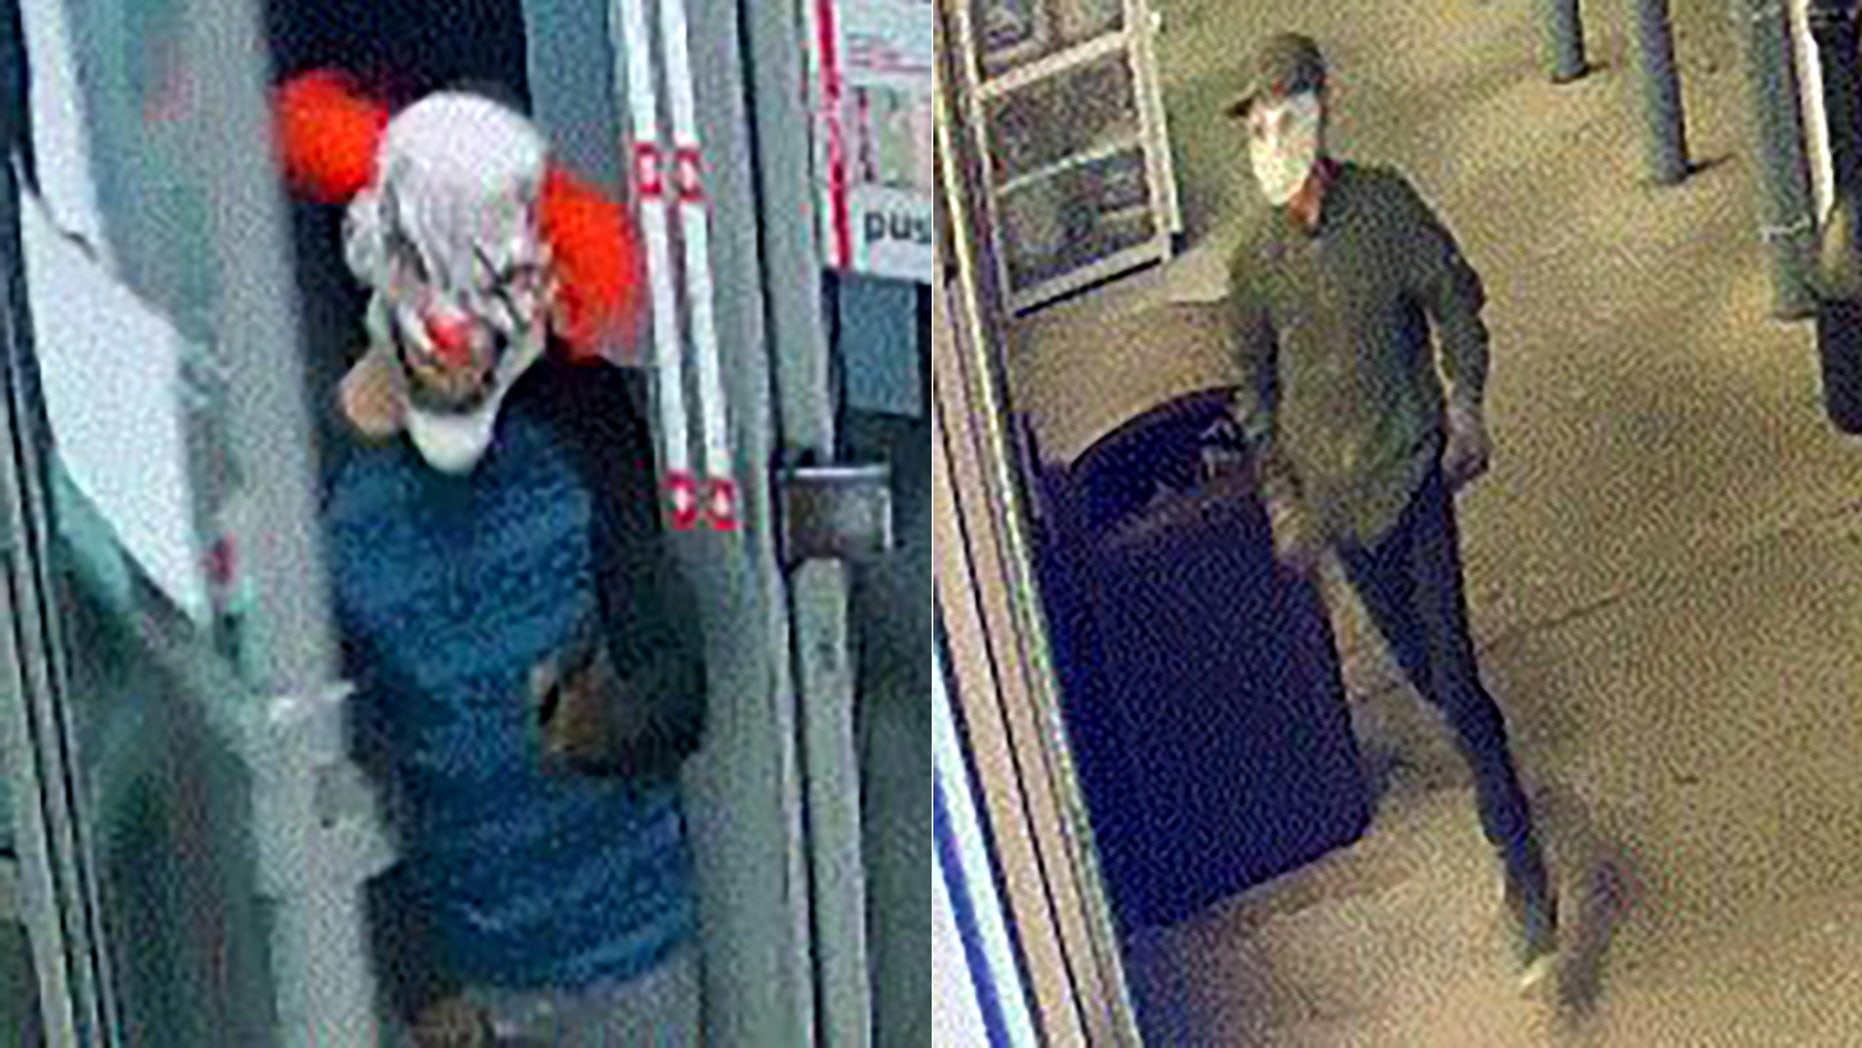 Police say two men -- one in a clown mask and another in a Jason Vorhees mask -- robbed two Florida gas stations.